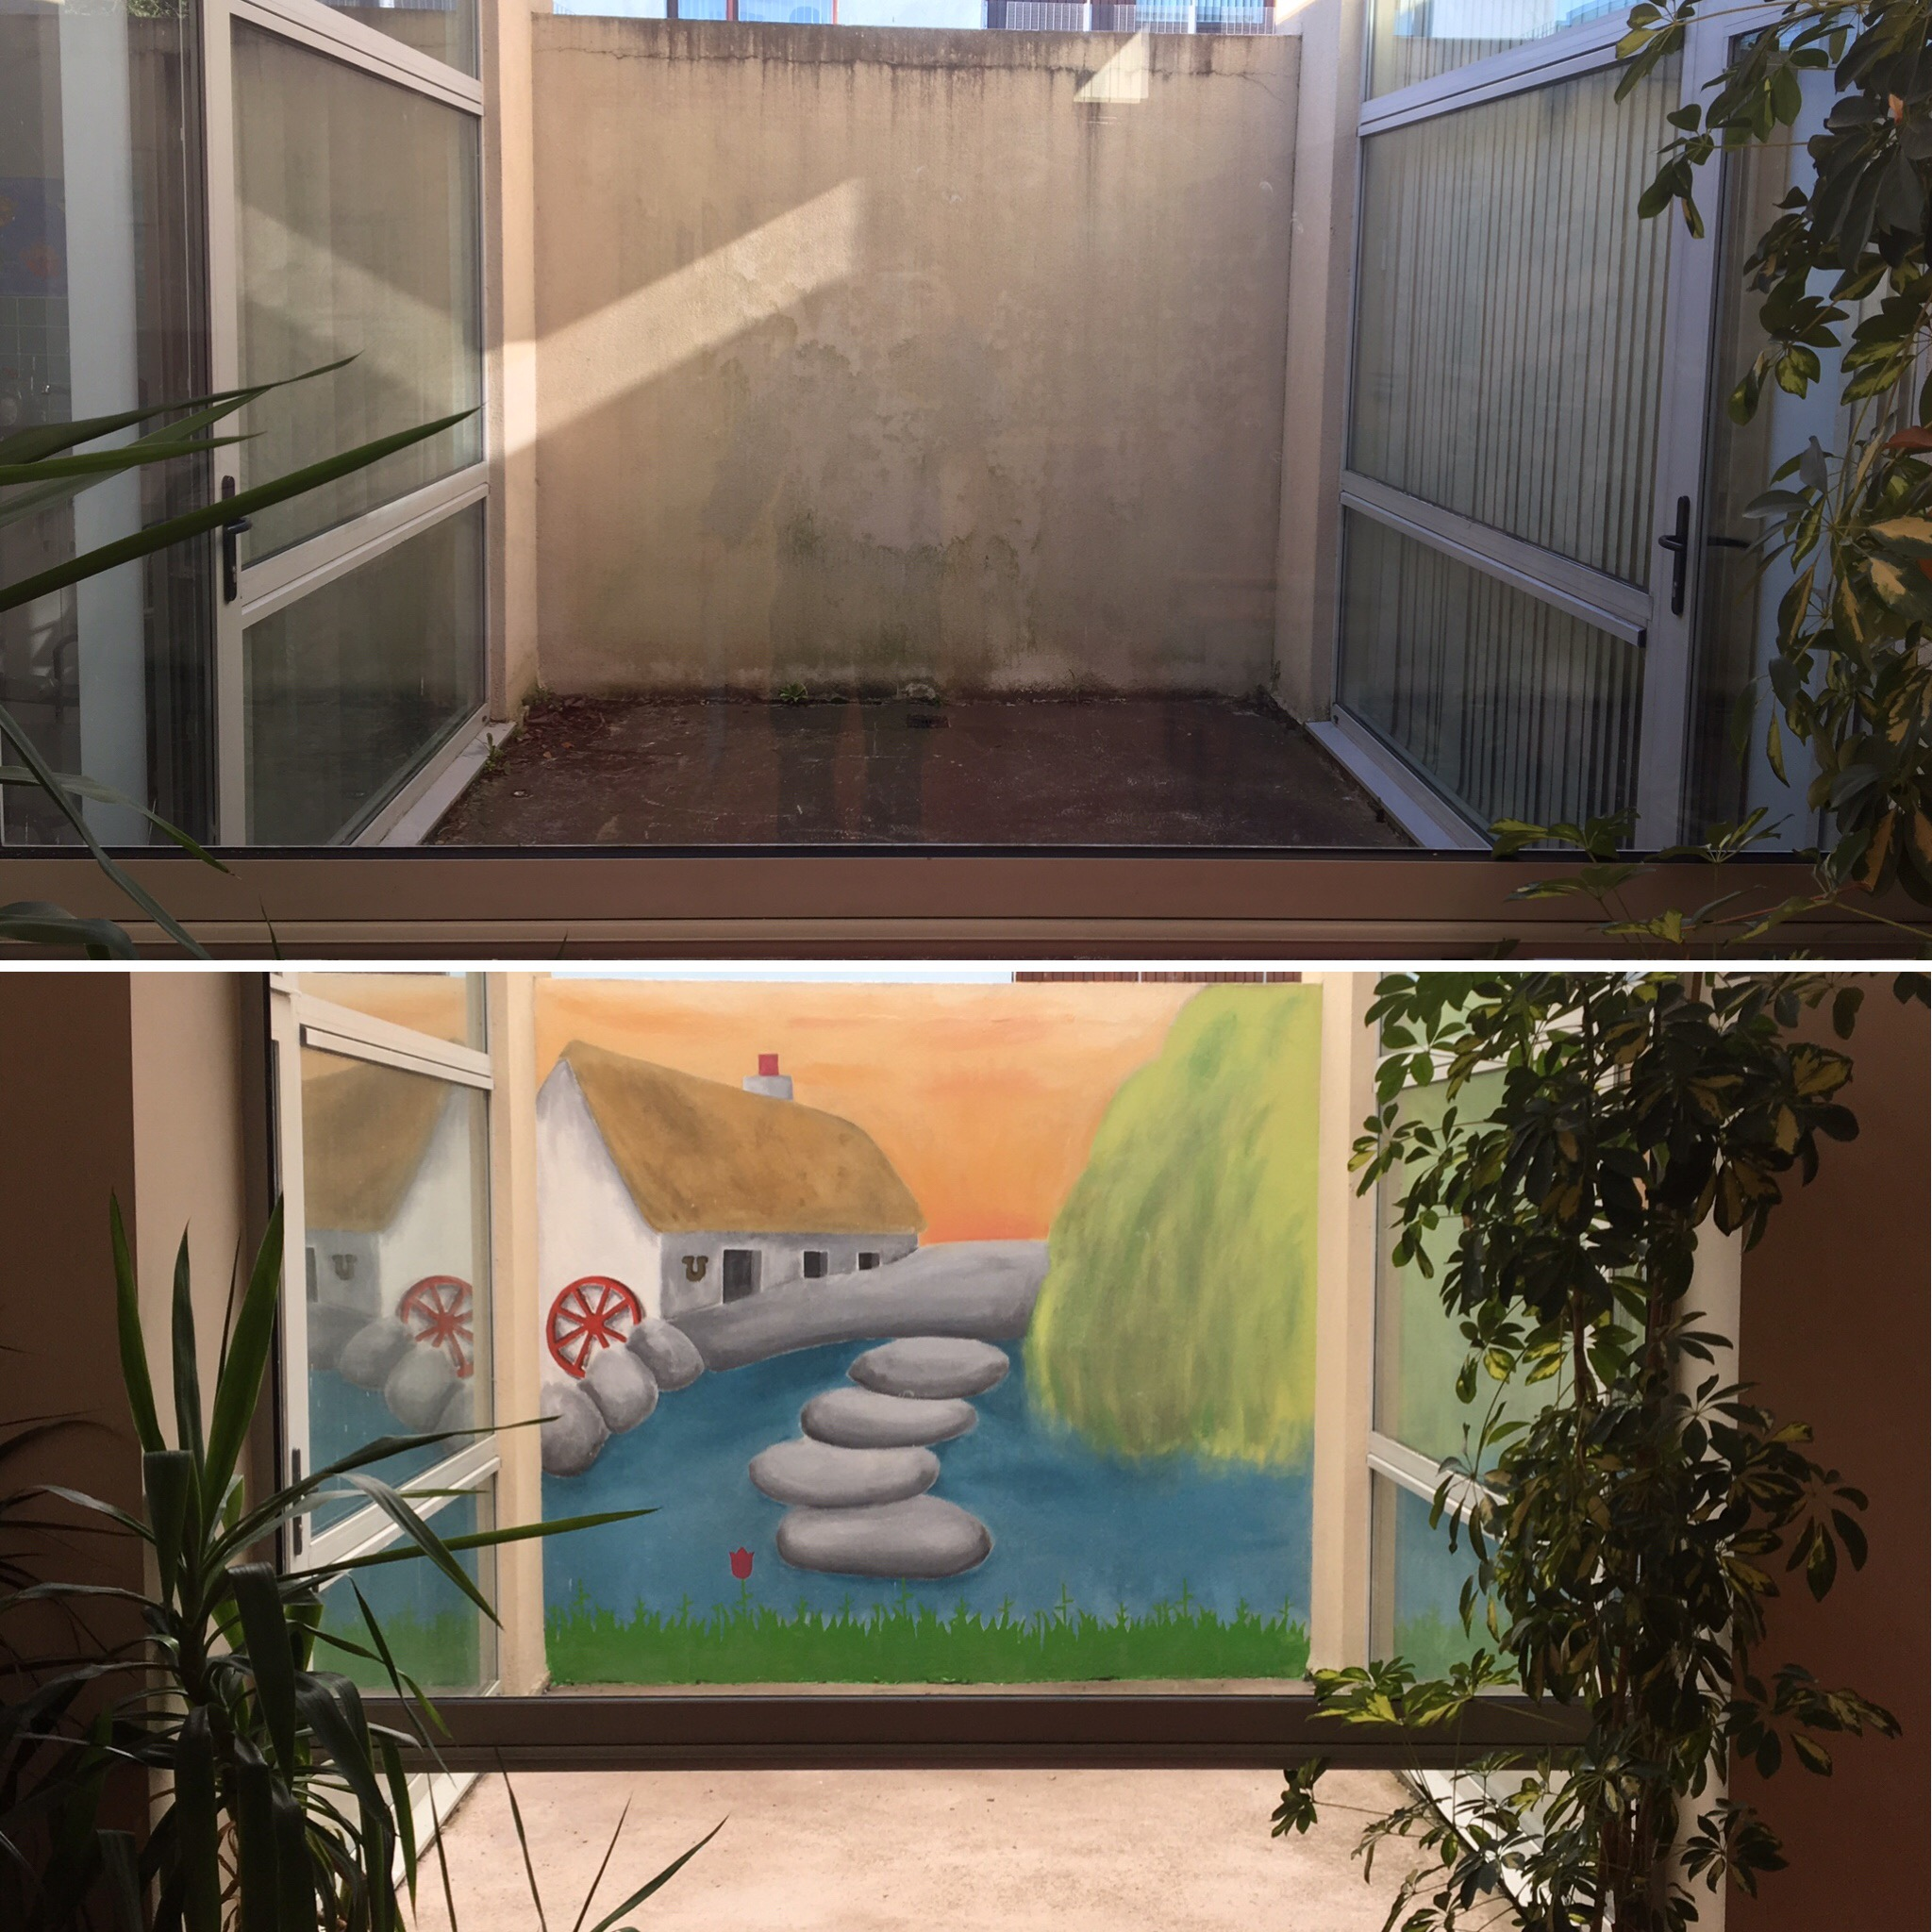 C.R.A.N.O.G. HSE Resource Centre, Castleblayney - Mural completed alongside Acquired Brain Injury patients to brighten up HSE Resource Centre in Castleblayney, Co. Monaghan, in assocation with ABI Ireland.